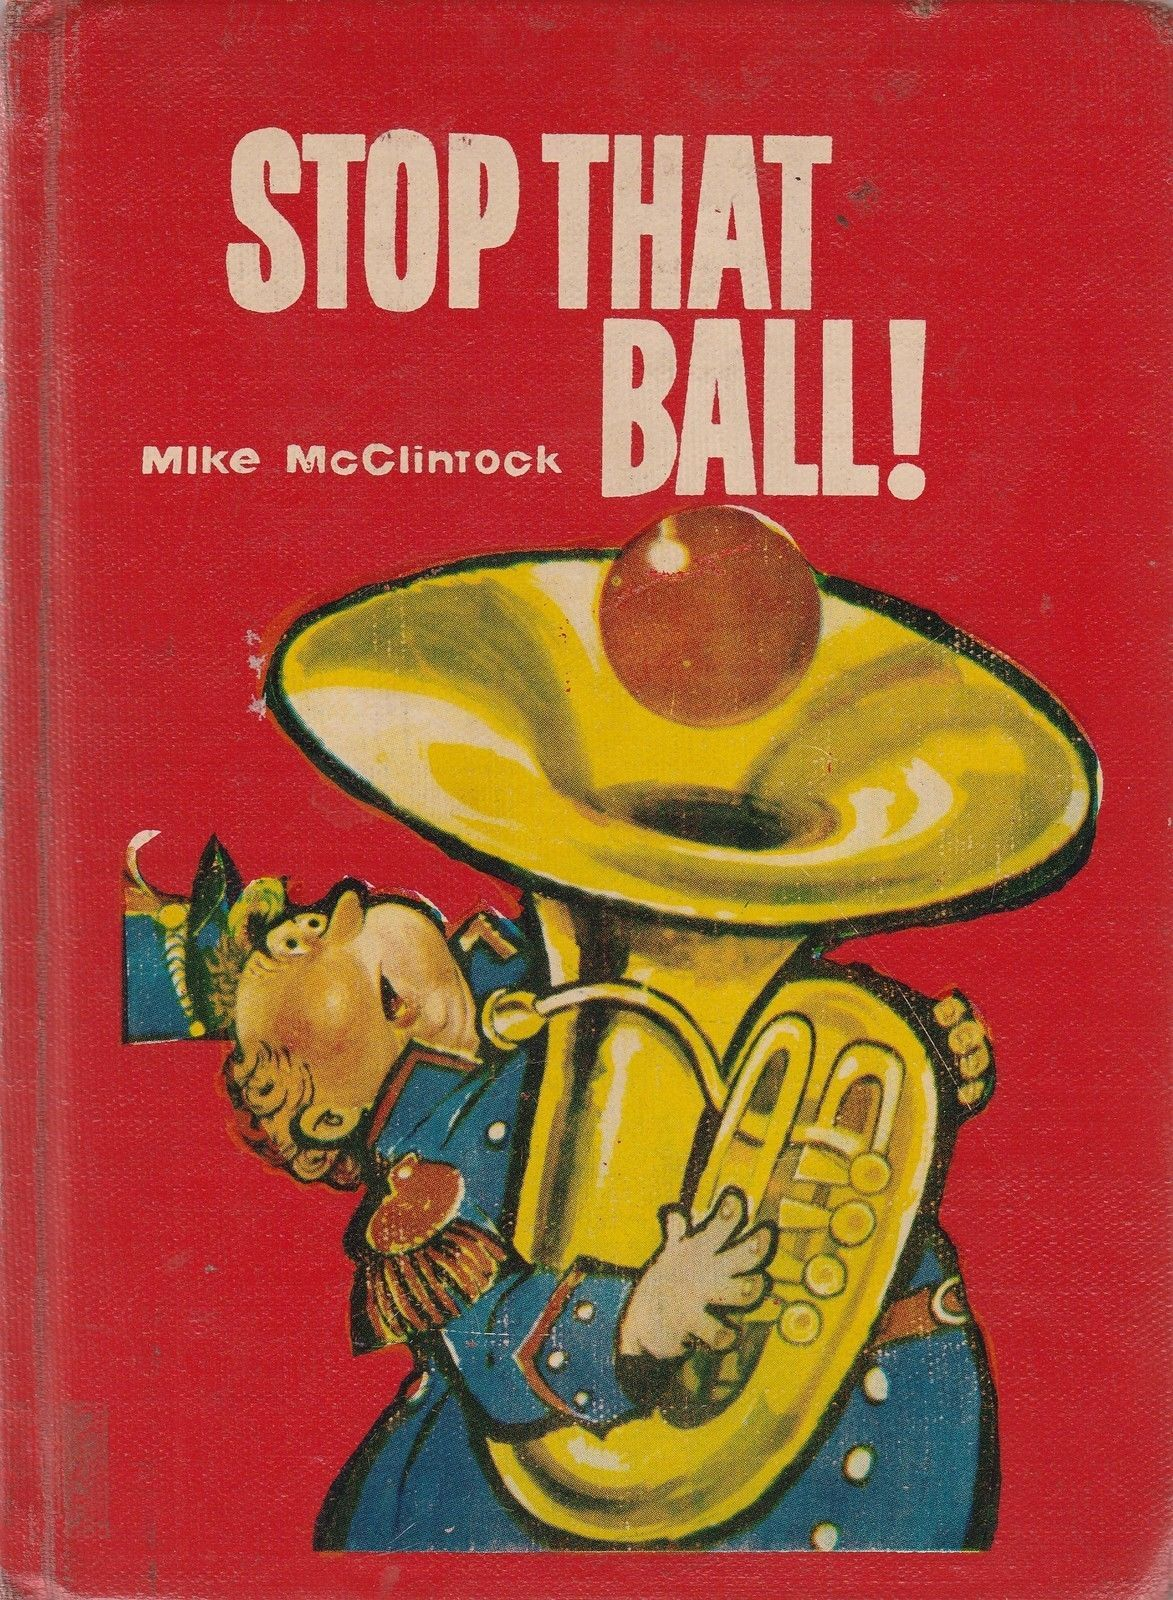 Stop That Ball! by Mike McClintock 1959 Fritz Siebel Vintage Children's Book